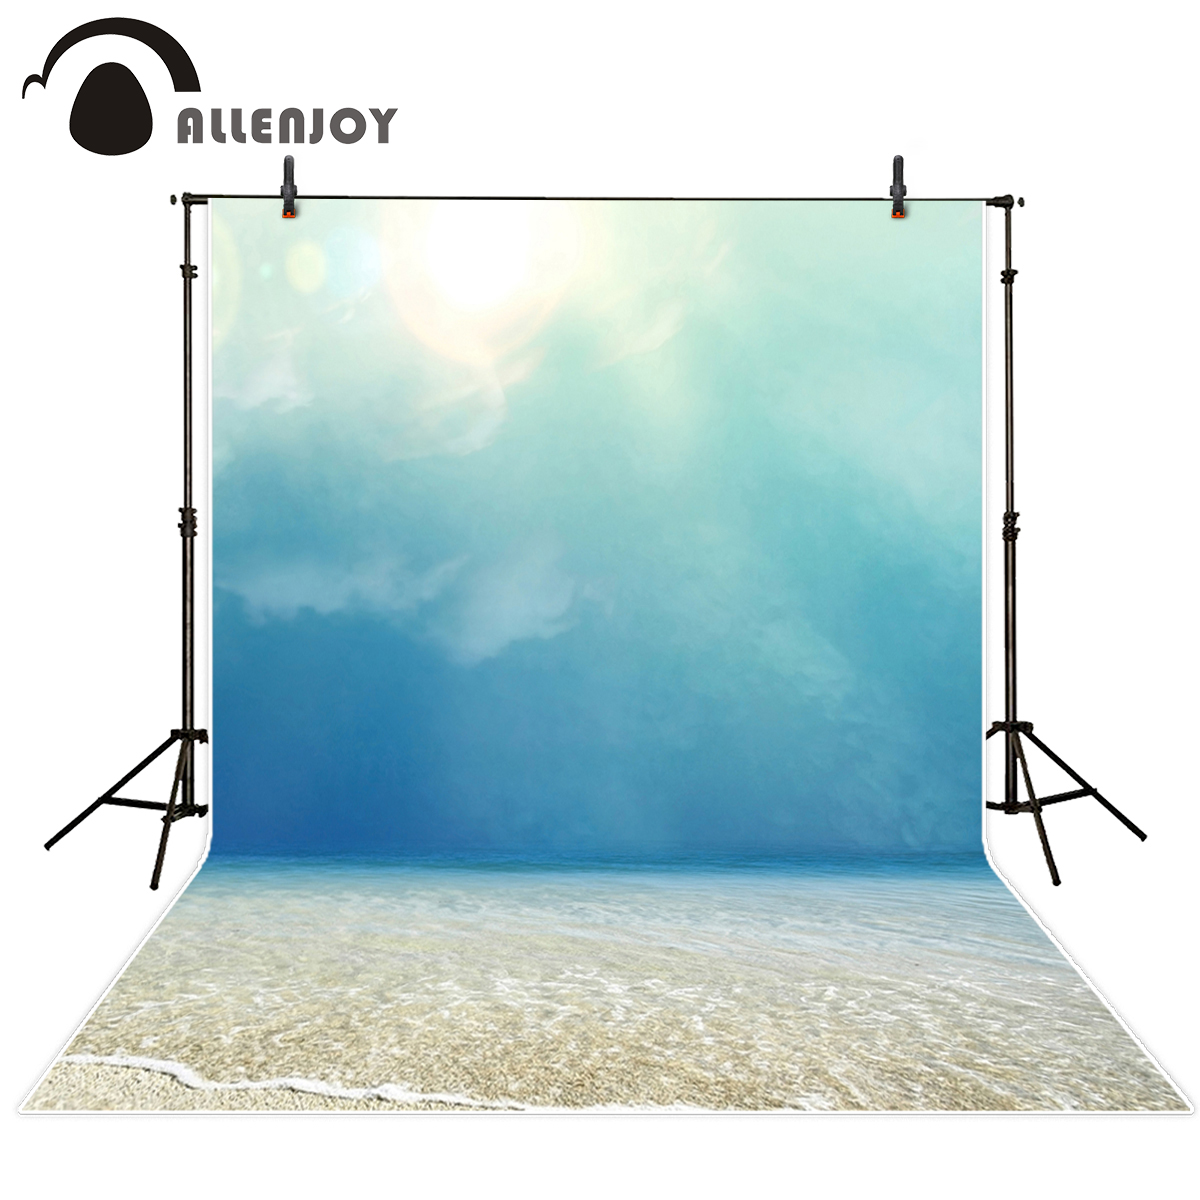 Allenjoy photography backdrops Blue sky Beach Sunshine ocean photographic camera backdrop Natural Scenery personal customize брелок blue sky faux taobao pc006